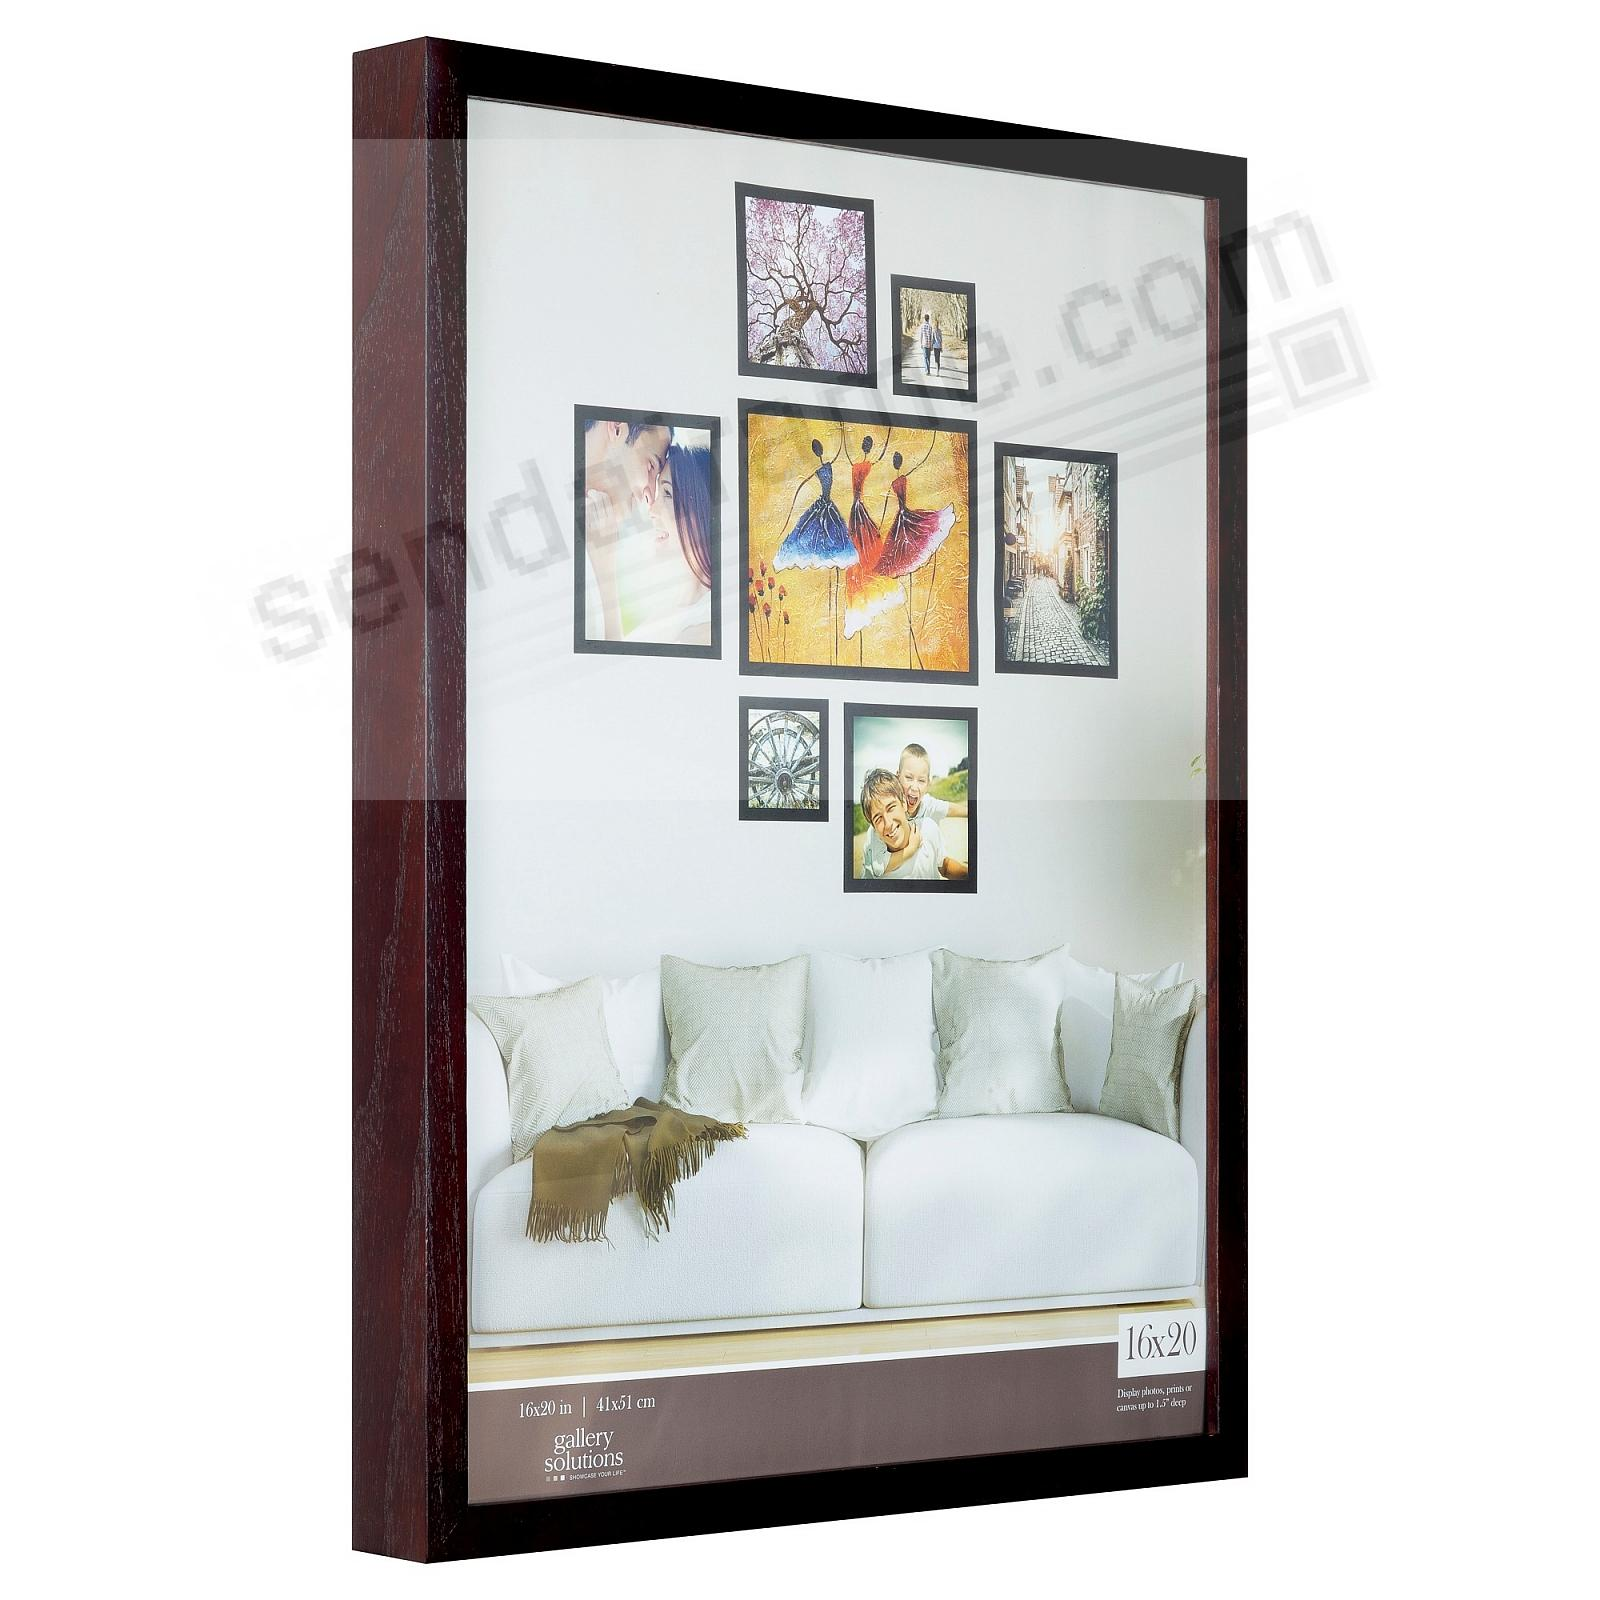 Walnut GALLERY 16x20 frame by Gallery Solutions®